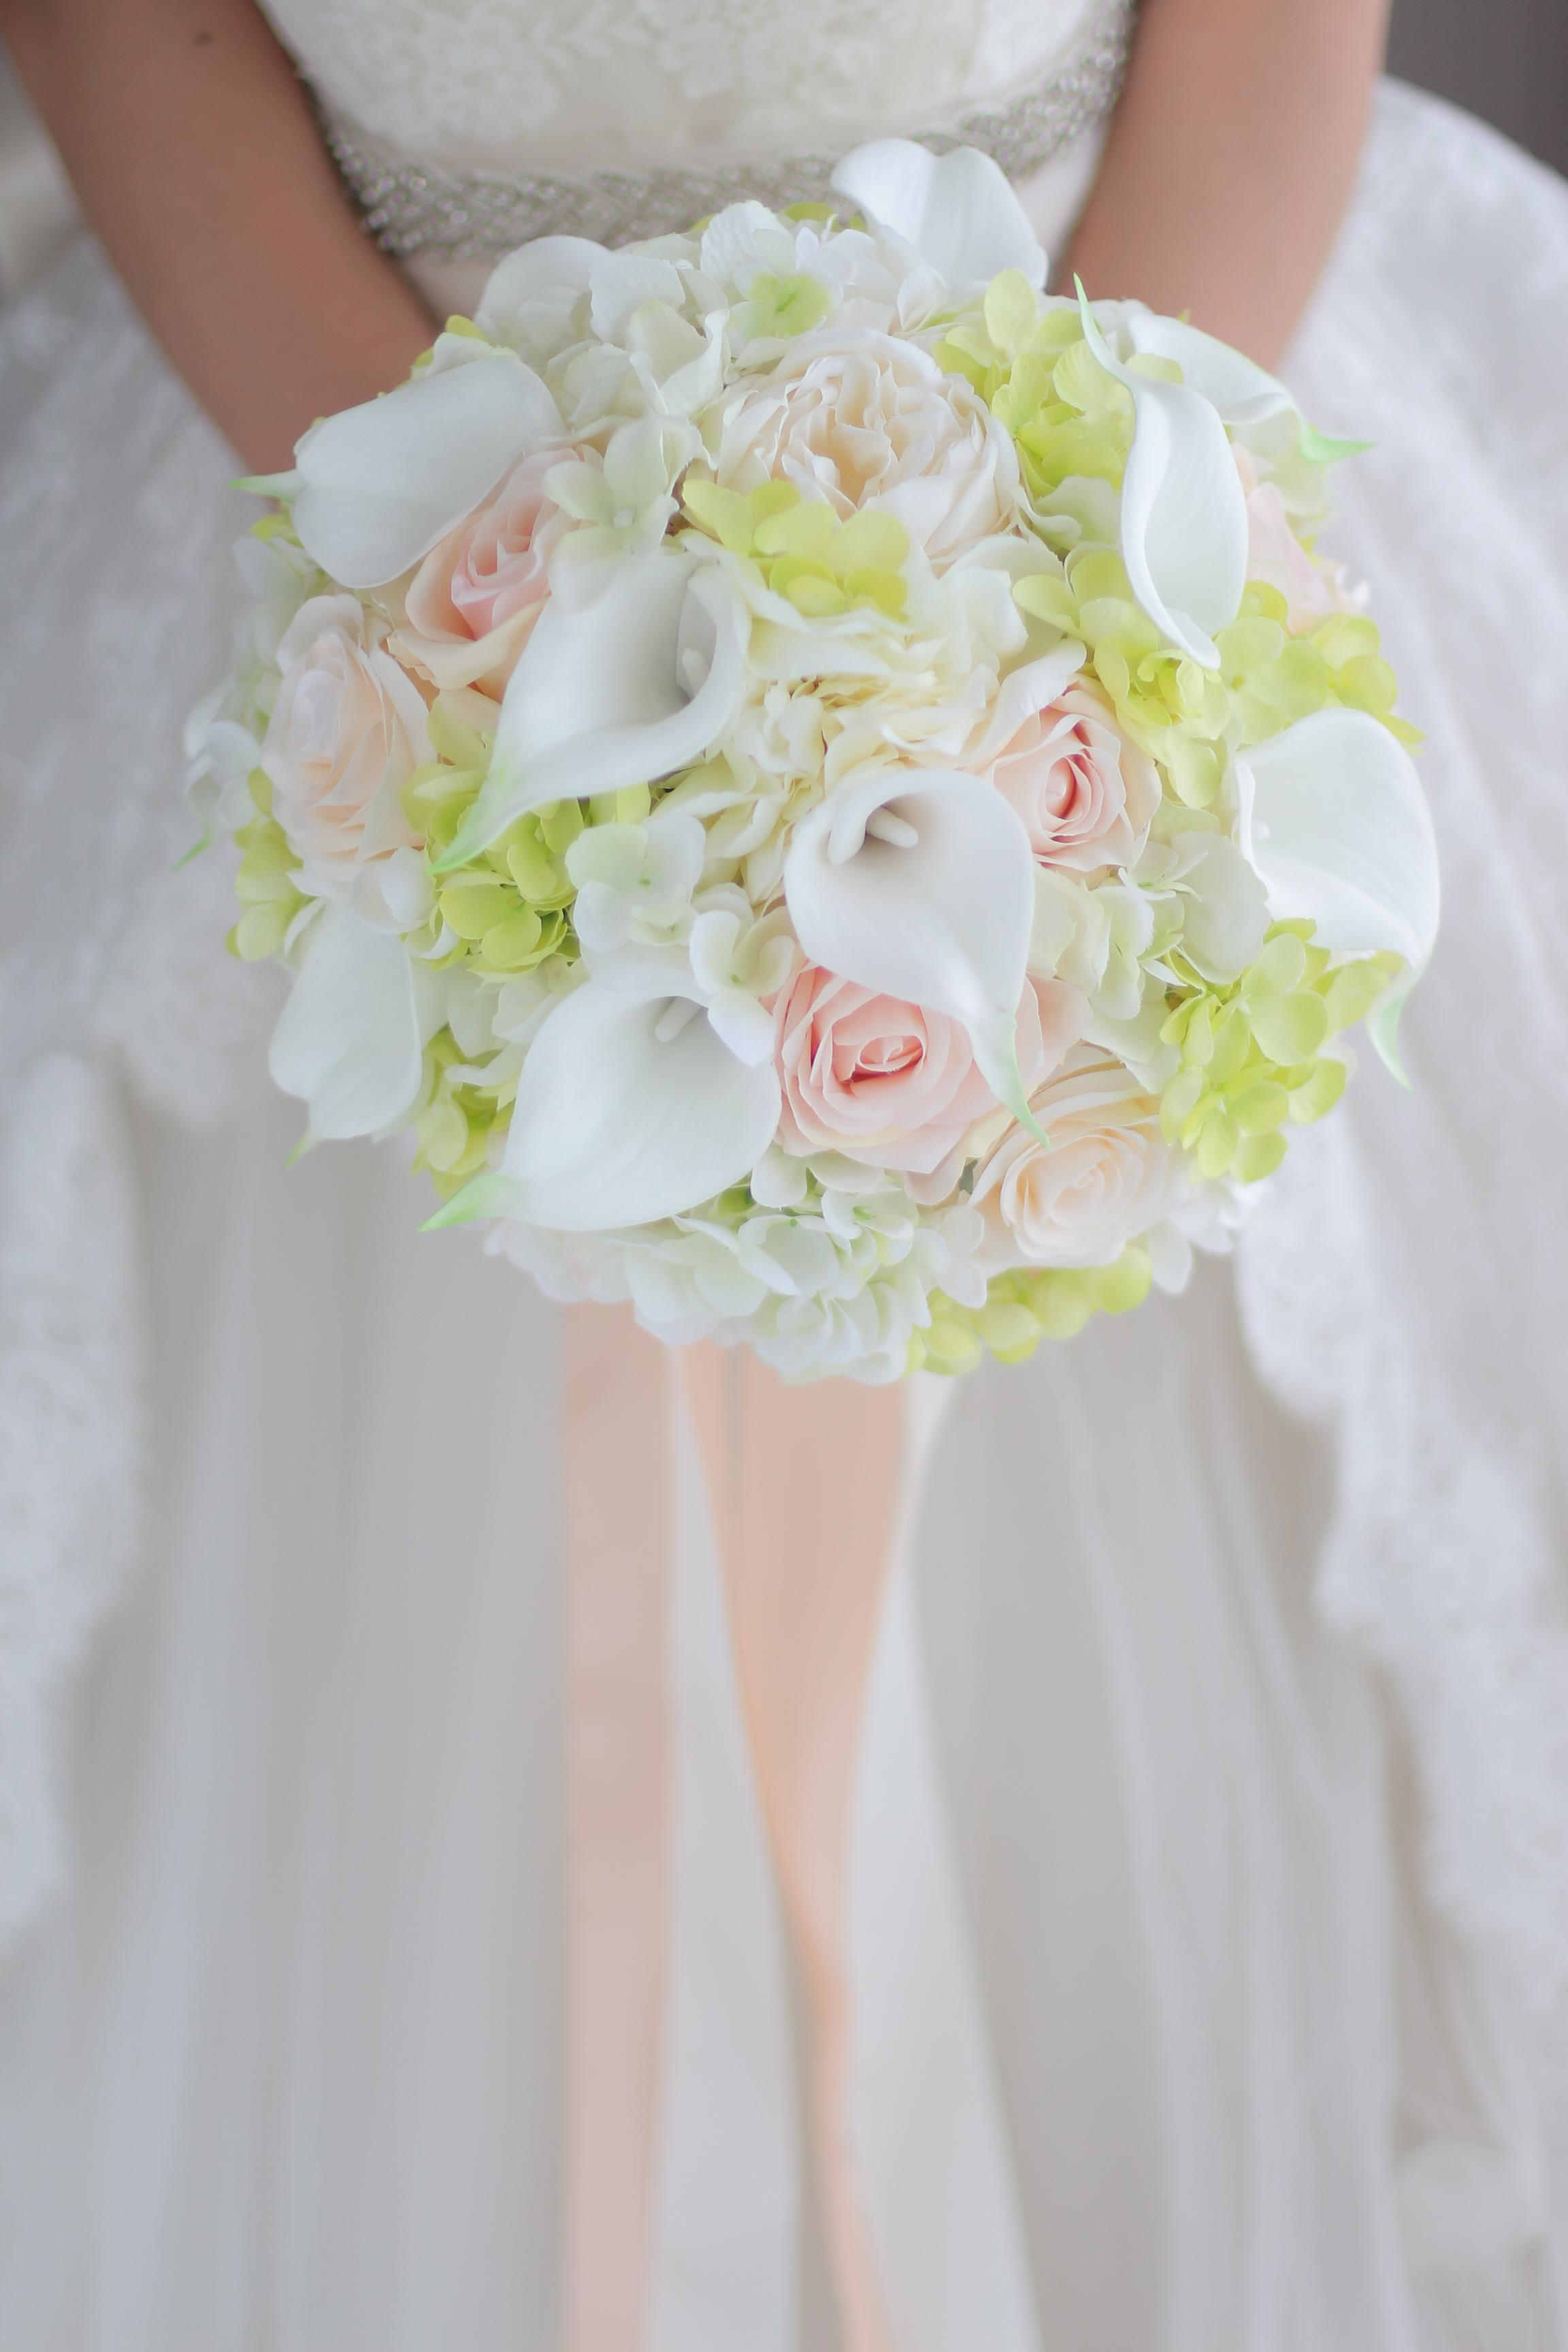 Latest wedding bouquet white champagne rose calla lily green latest wedding bouquet white champagne rose calla lily green hydrangea bride bridesmaid bouquet flower bridal bouquet wedding bouquet online with izmirmasajfo